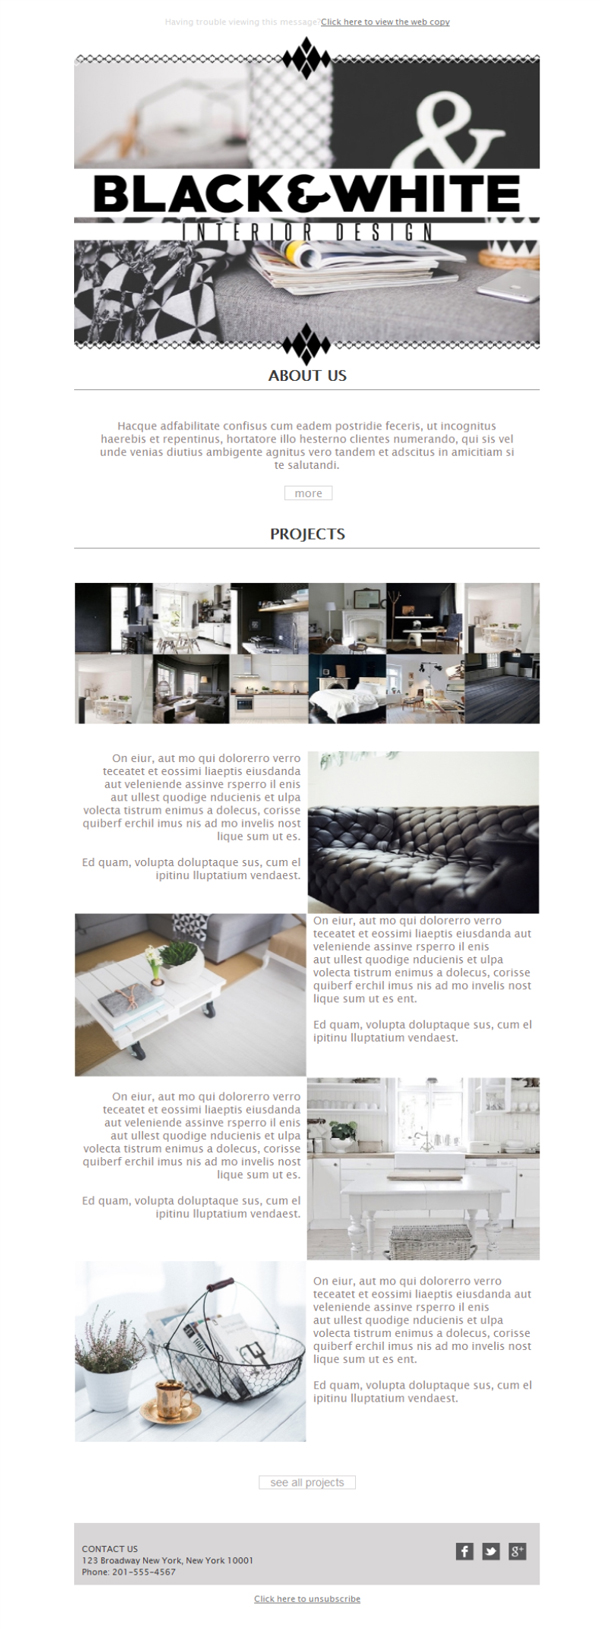 Free email templates - Download design Interior Design Project